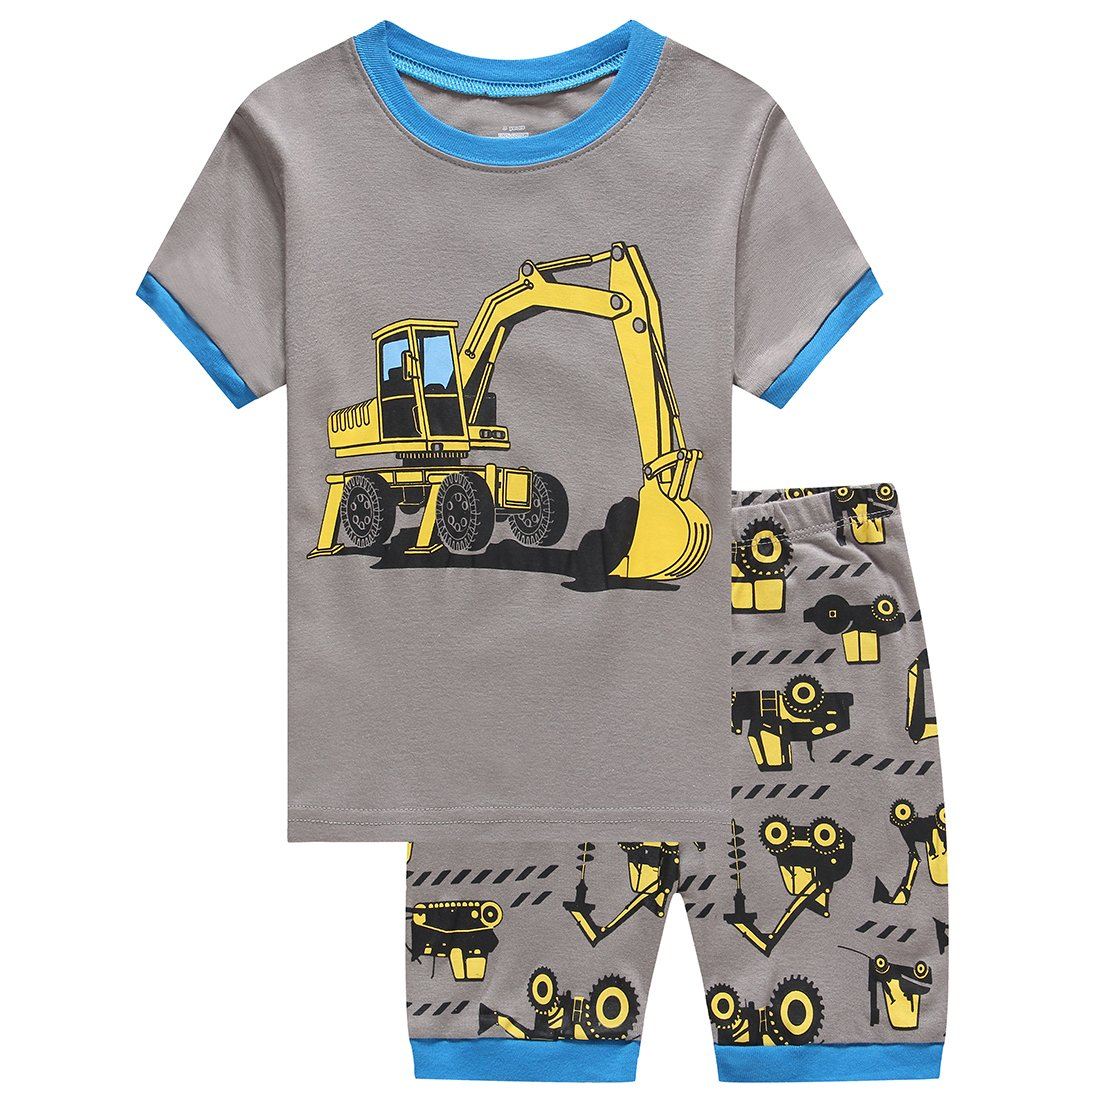 Little Boy Short Sleeve Excavator Pajamas Sets 100% Cotton Toddler Kid Sleepwear Size 7